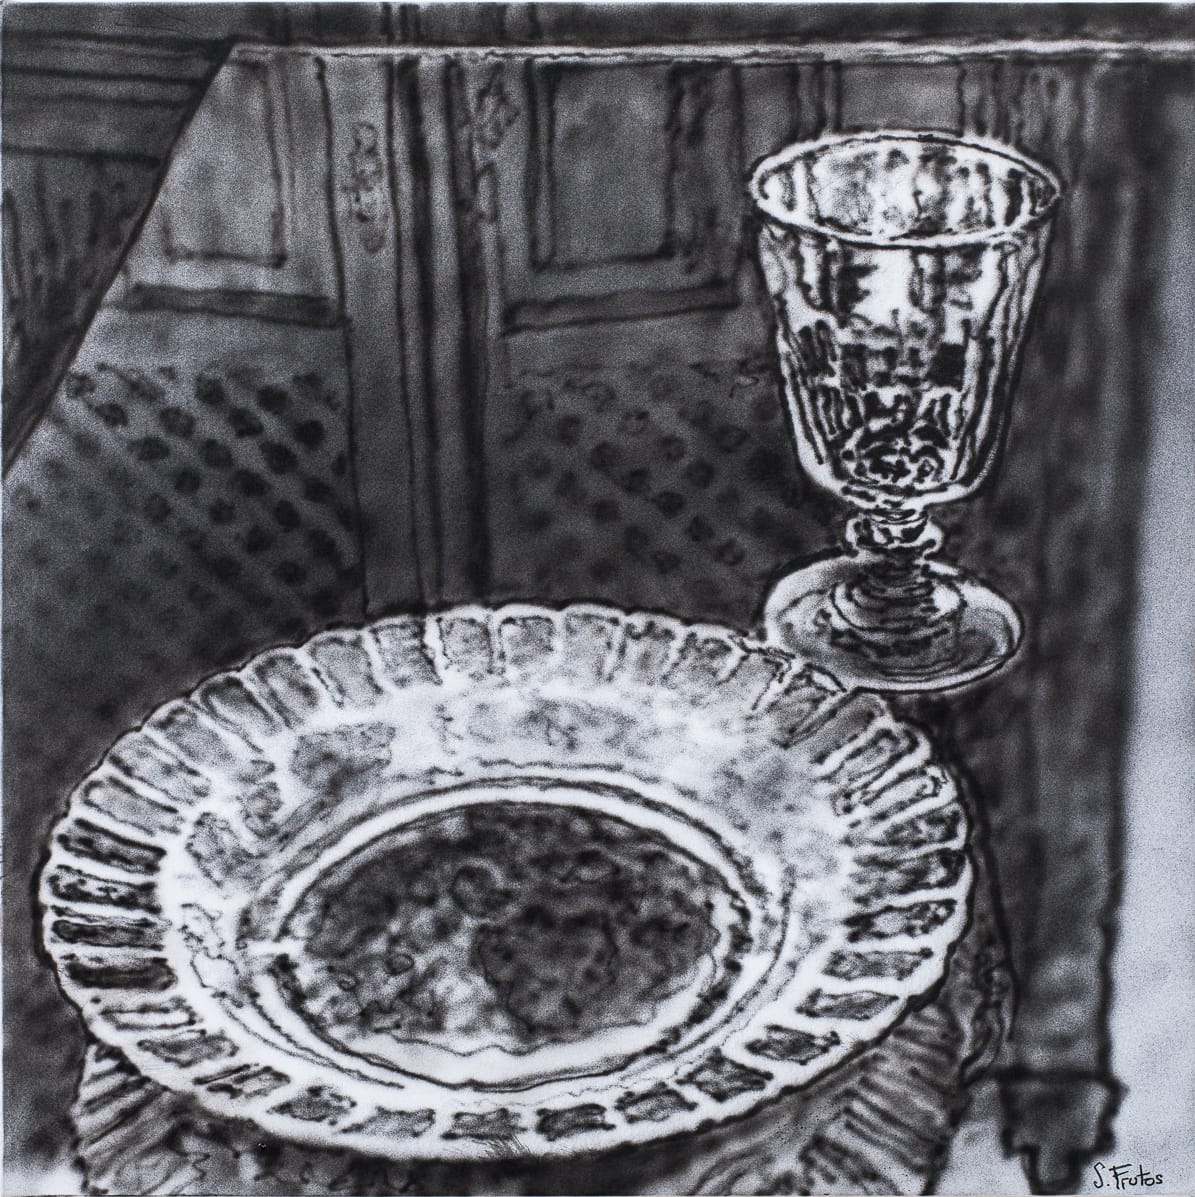 Glass and Dish, Villarrubia. Ink on paper on wood, 30 x 30 cm, 2018